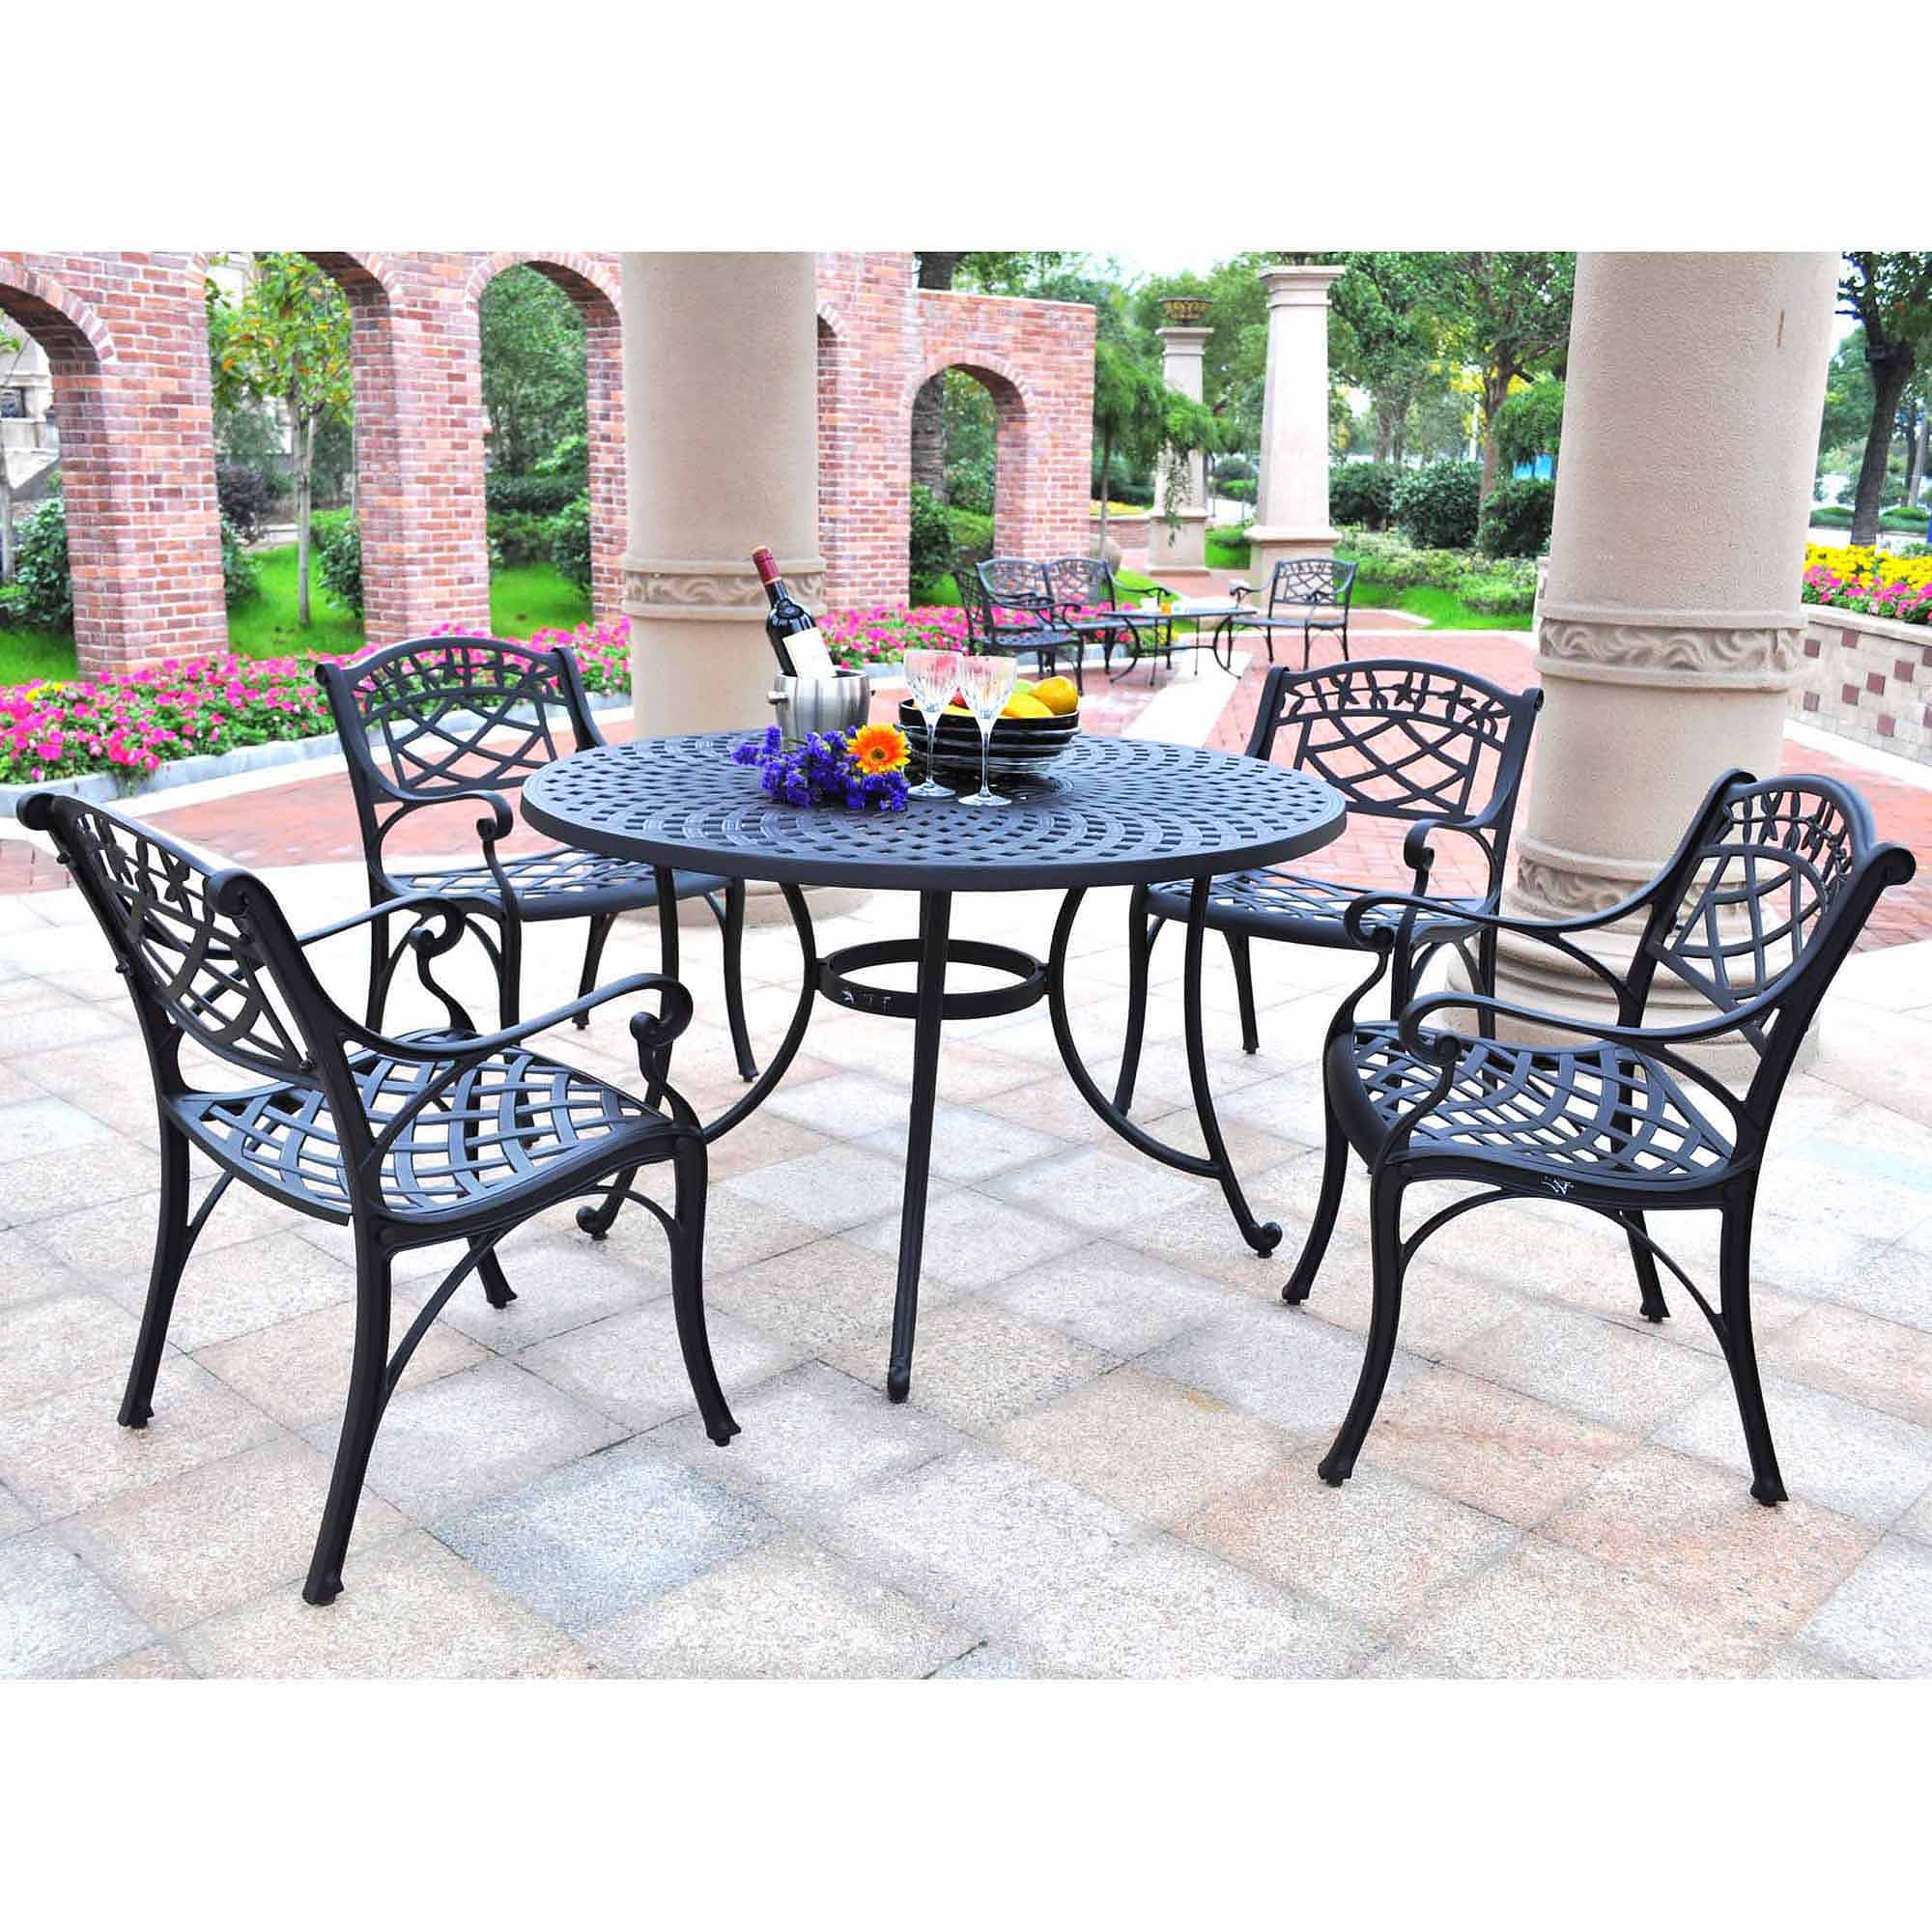 "Crosley Furniture Sedona 46"" Five-Piece Cast Aluminum Outdoor Dining Set"